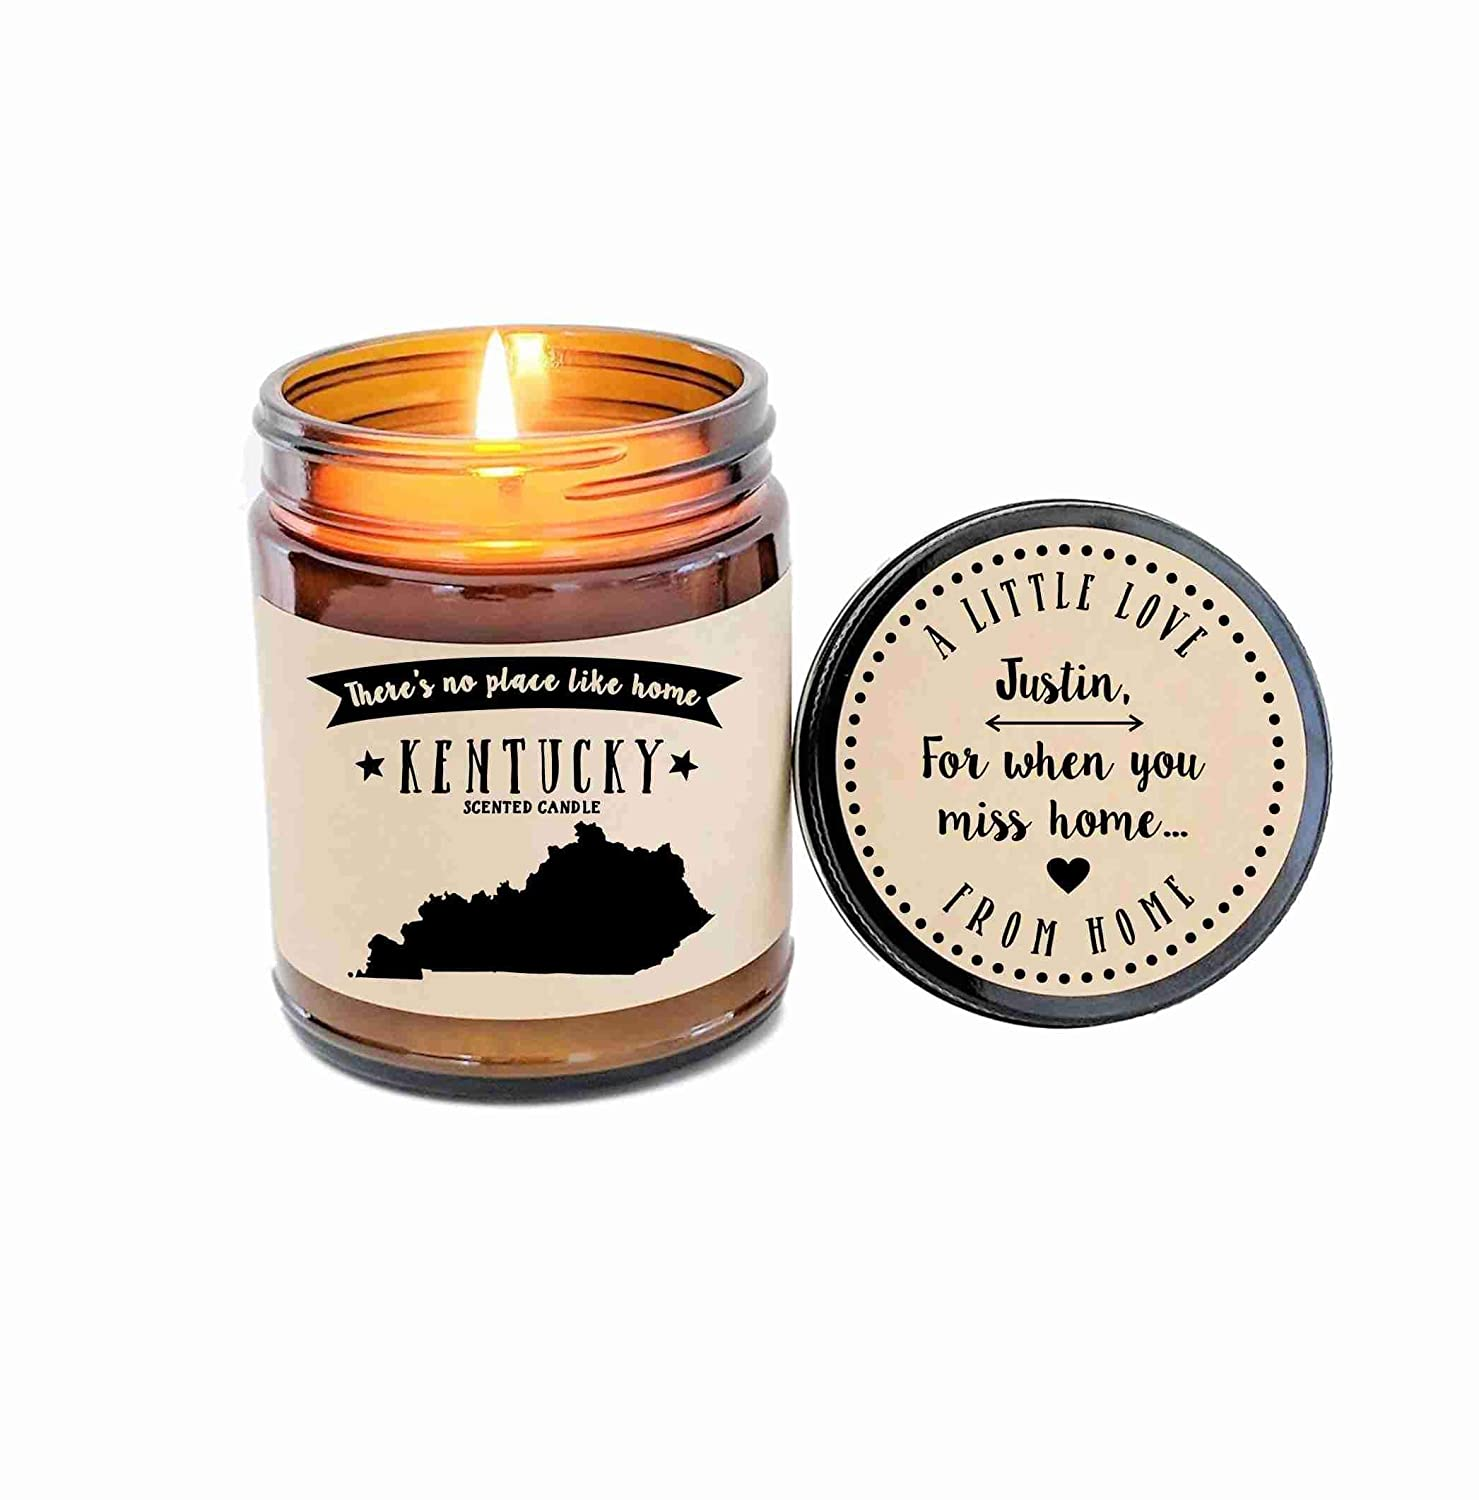 Kentucky Scented Candle Missing Home Homesick Gift Moving Gift New Home Gift No Place Like Home State Candle Thinking of You Valentines Day Gift